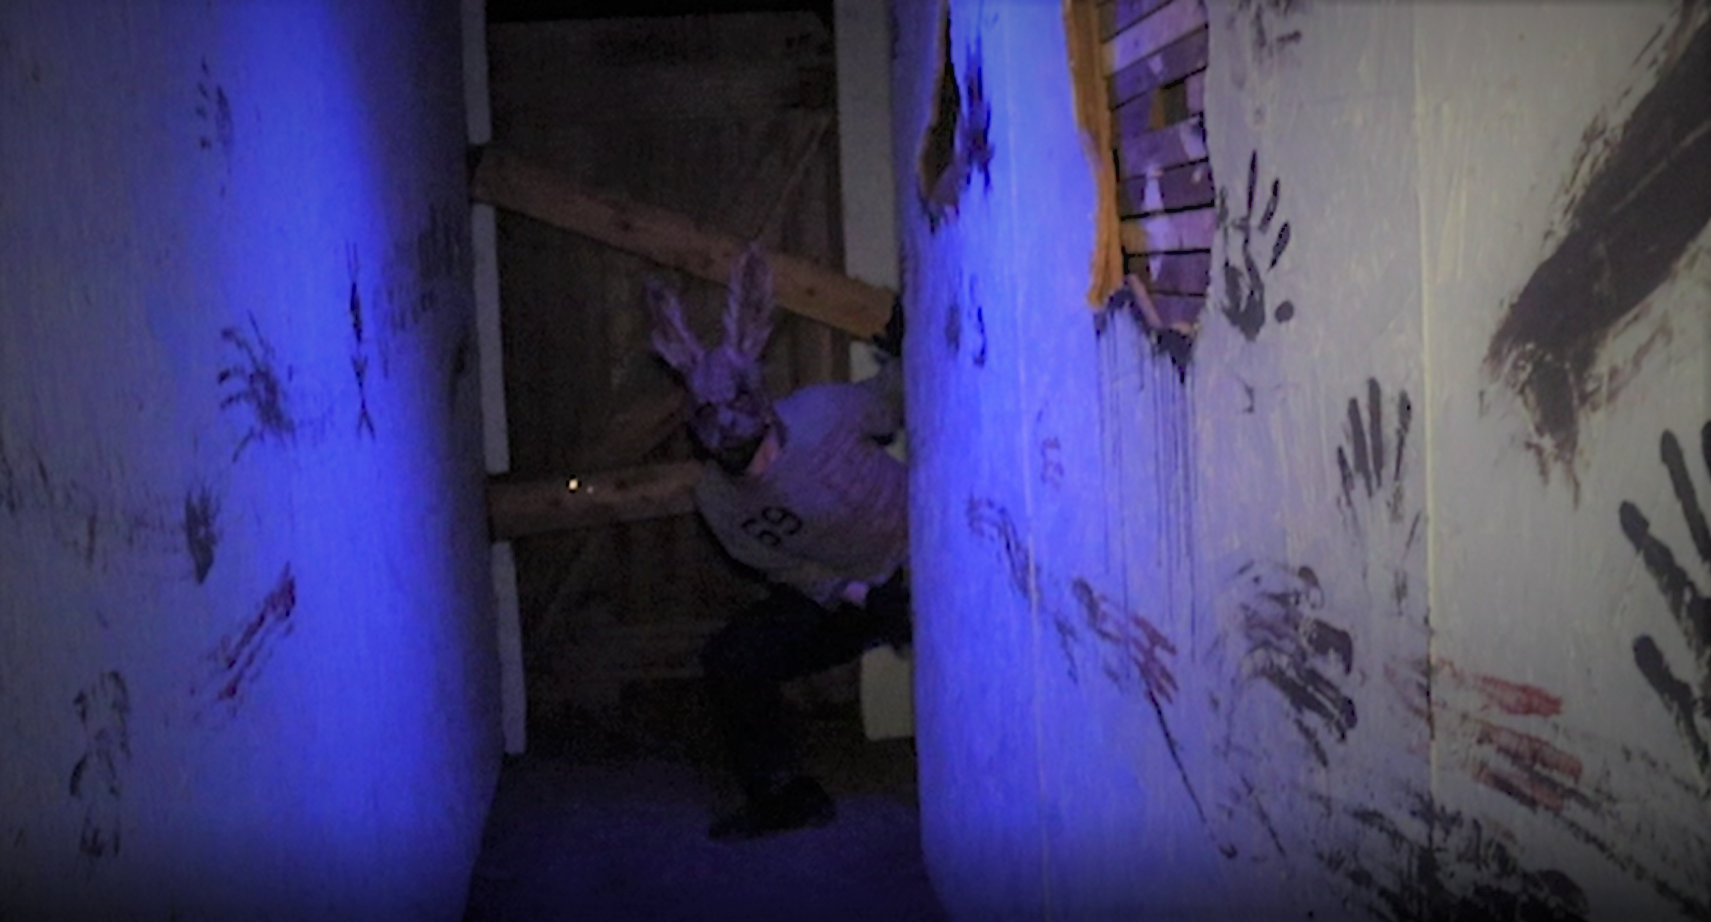 A masked man peeks from behind a wall in a haunted house